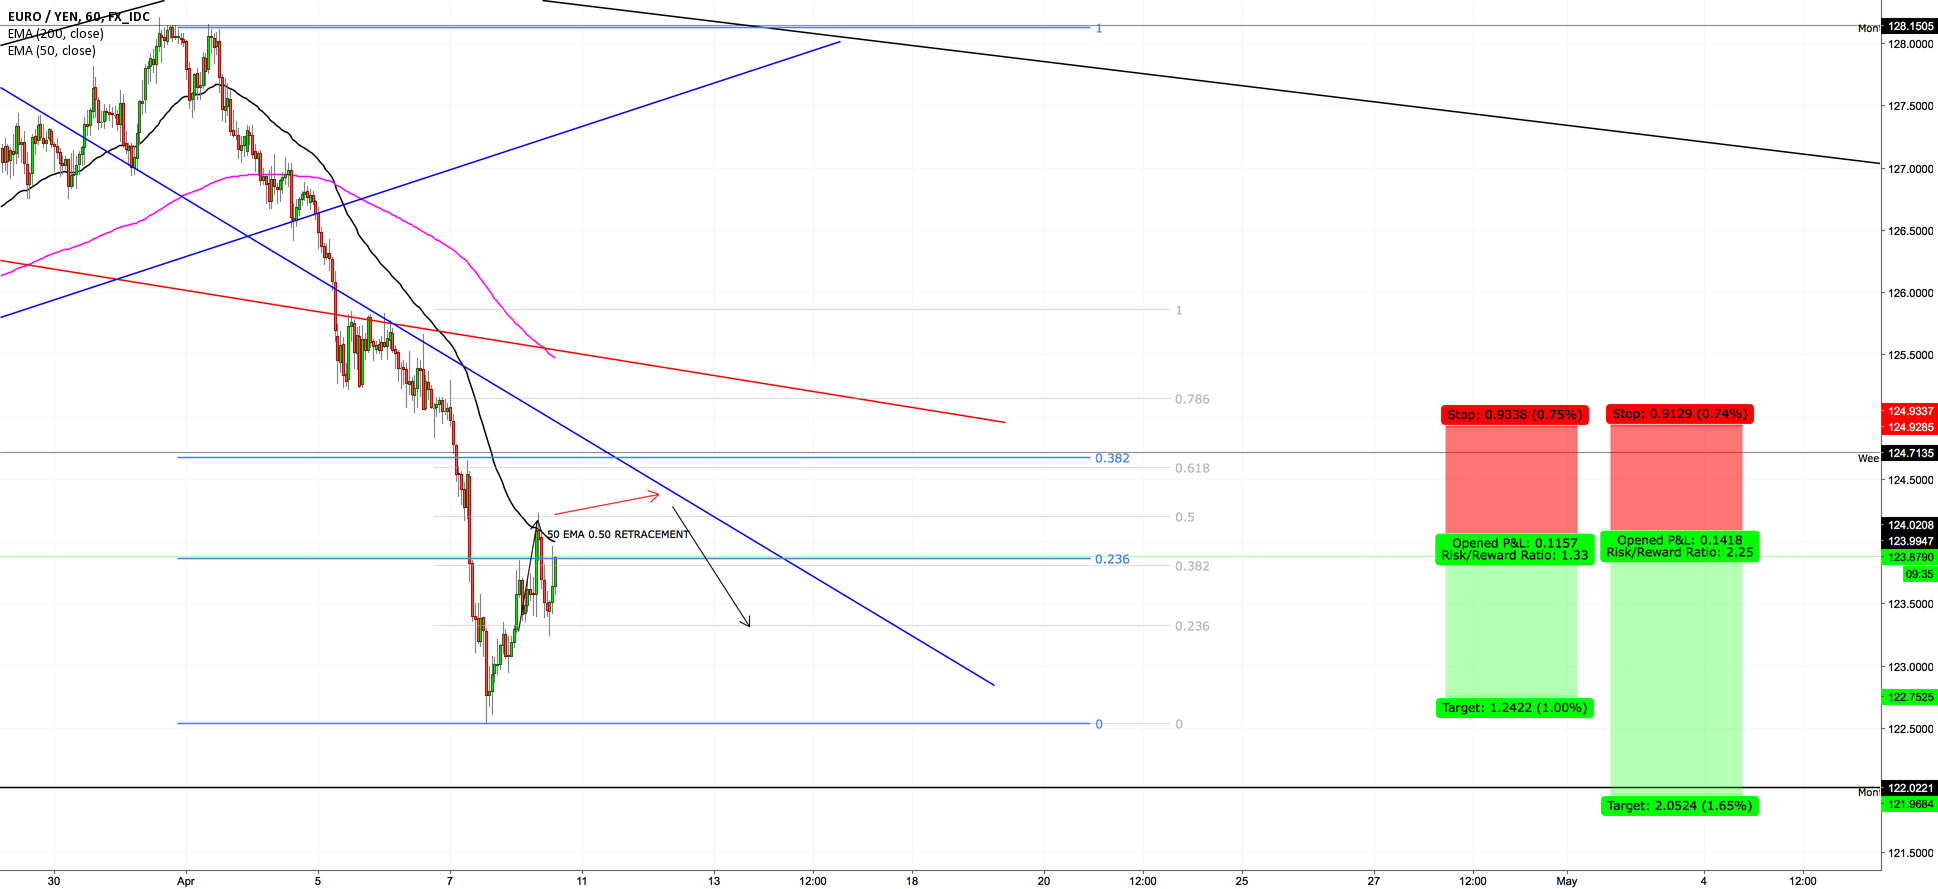 EURJPY -- STILL SHORT ON CLOSE BELOW 0.50 FIB